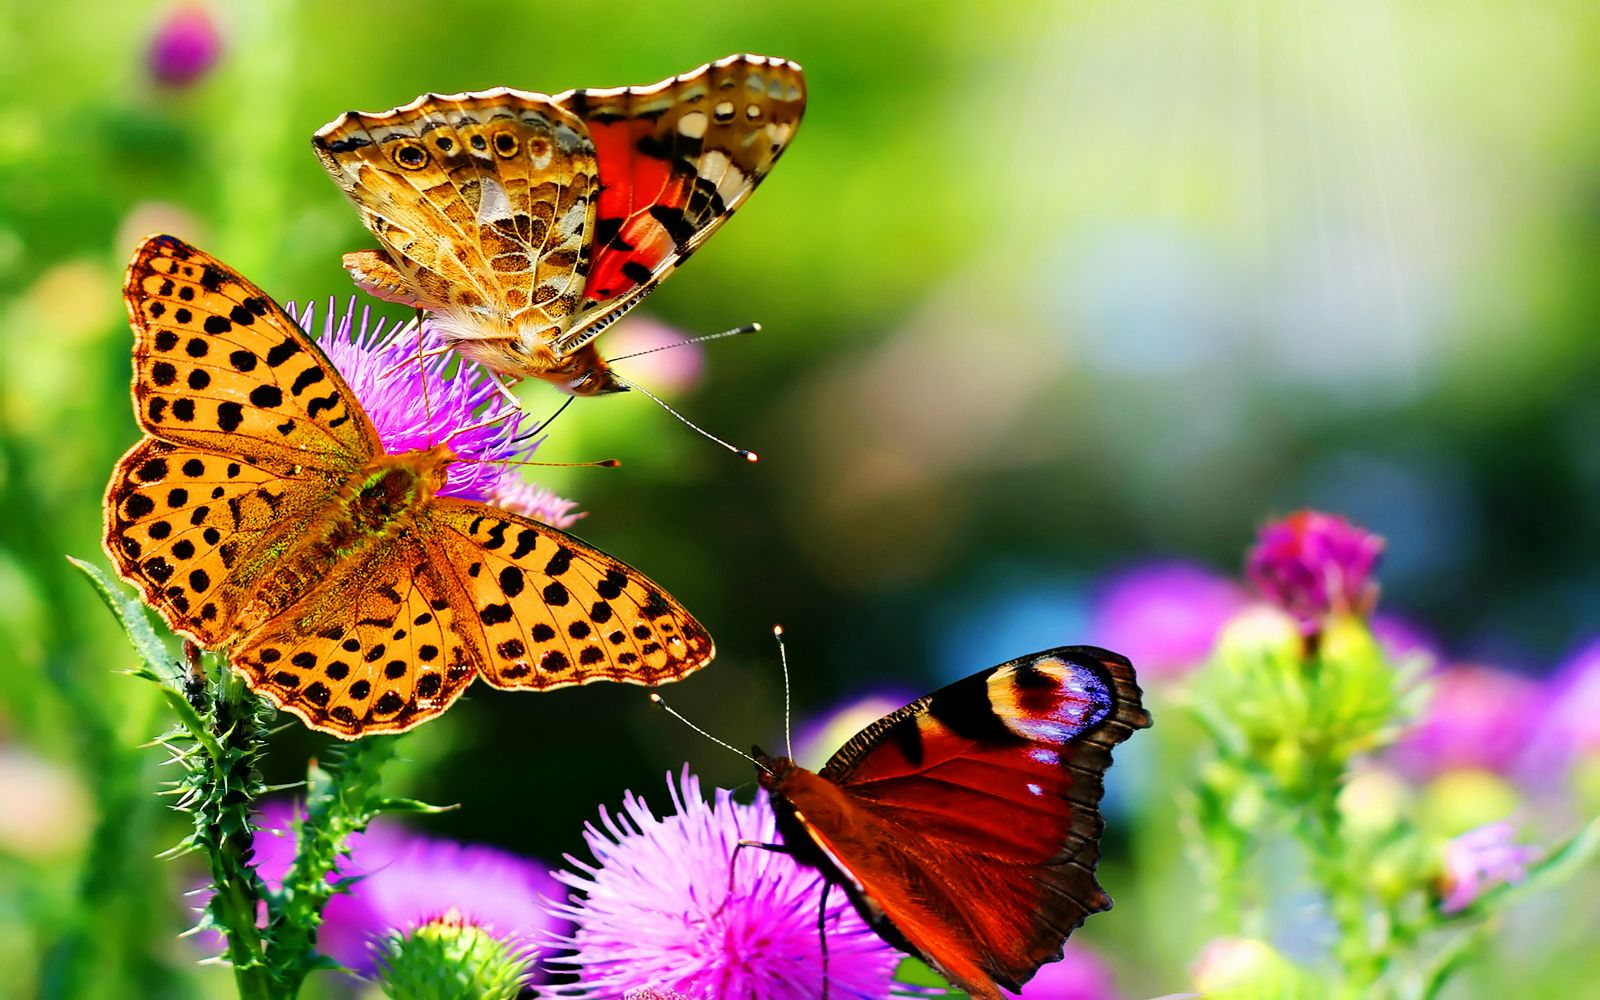 Hd Butterfly Nature Wallpapers Most Beautiful Butterfly Beautiful Butterflies Butterfly Wallpaper